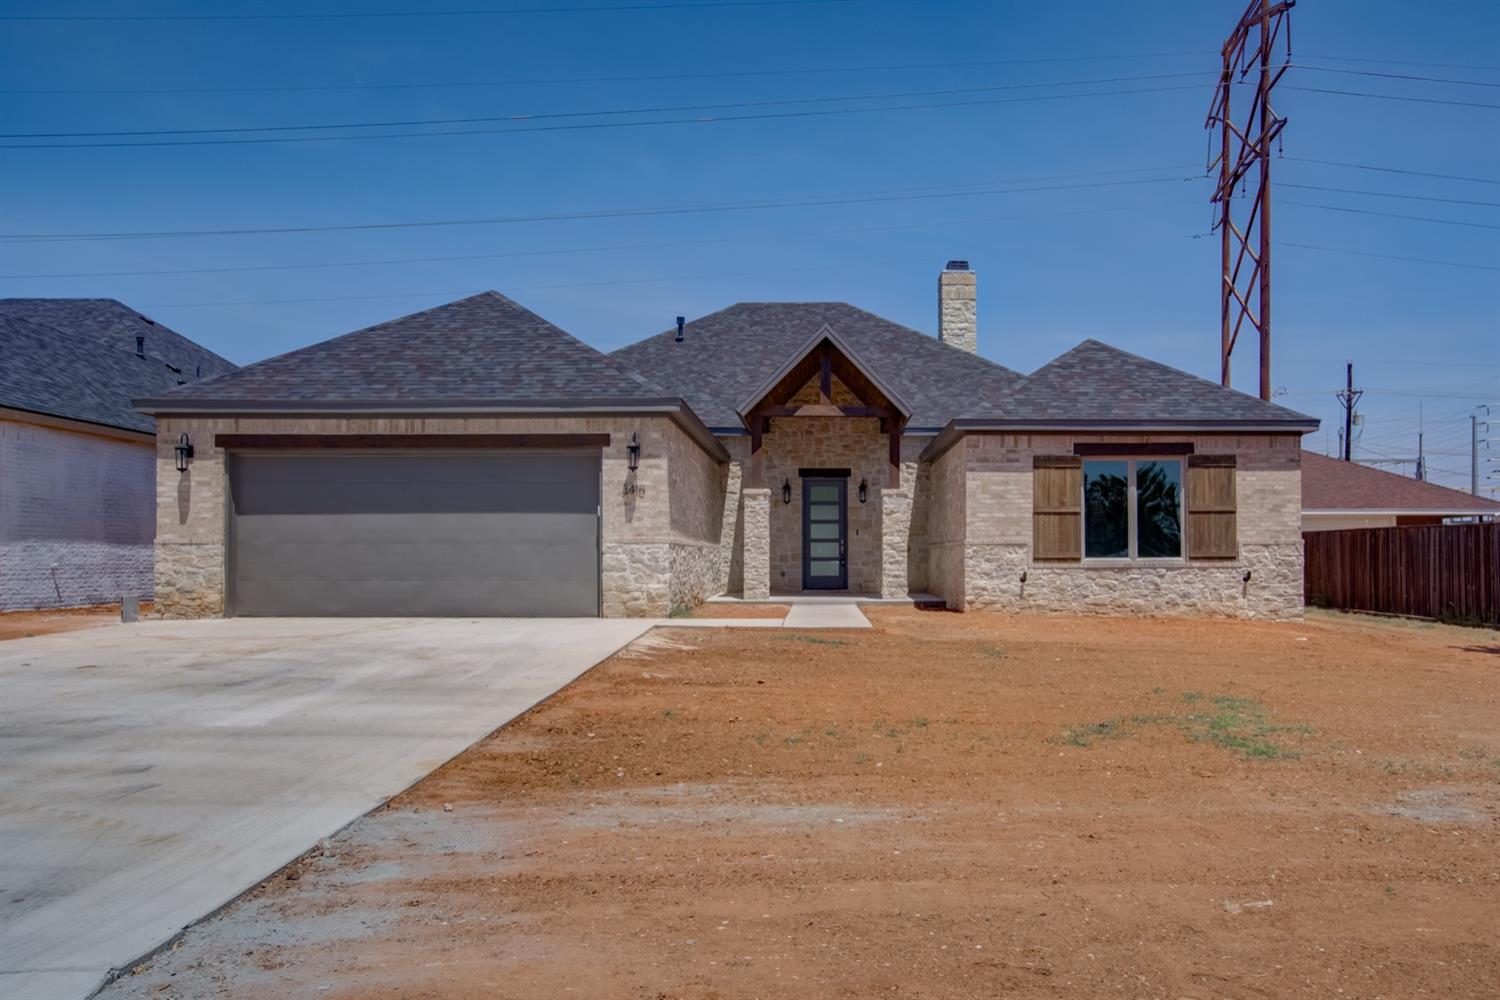 Looking for new construction in an established neighborhood?  Come check out this new 4 bedroom, 3 bath, 2 car garage home on an oversized lot.  Located in the desirable Cooper School District, this home will not disappoint.  The kitchen boasts stainless steel appliances, an island, and granite countertops.  Great designer colors through out.  The master bathroom has separate vanities, a large walk-in closet, a walk-in shower, and tub. Make sure to book your appointment to see this home!